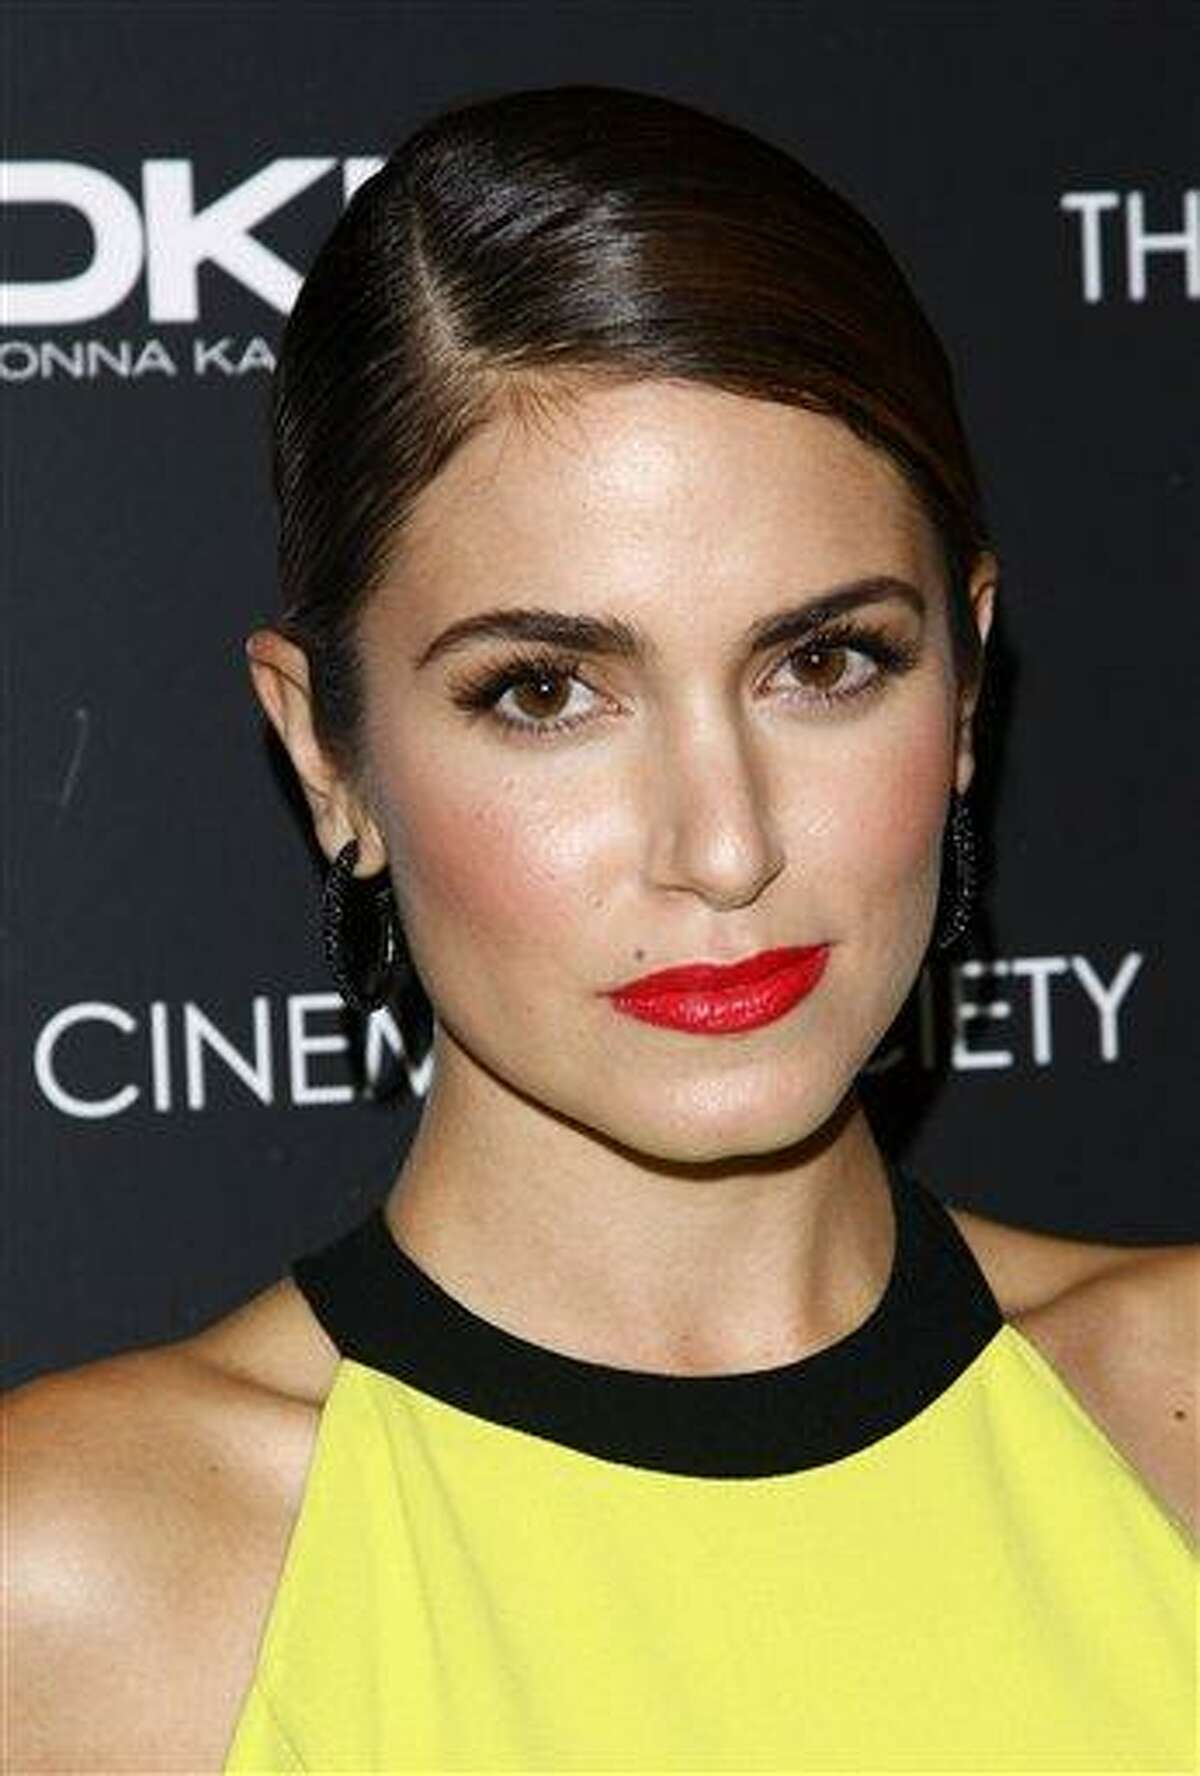 Actress Nikki Reed attends the Cinema Society premiere of